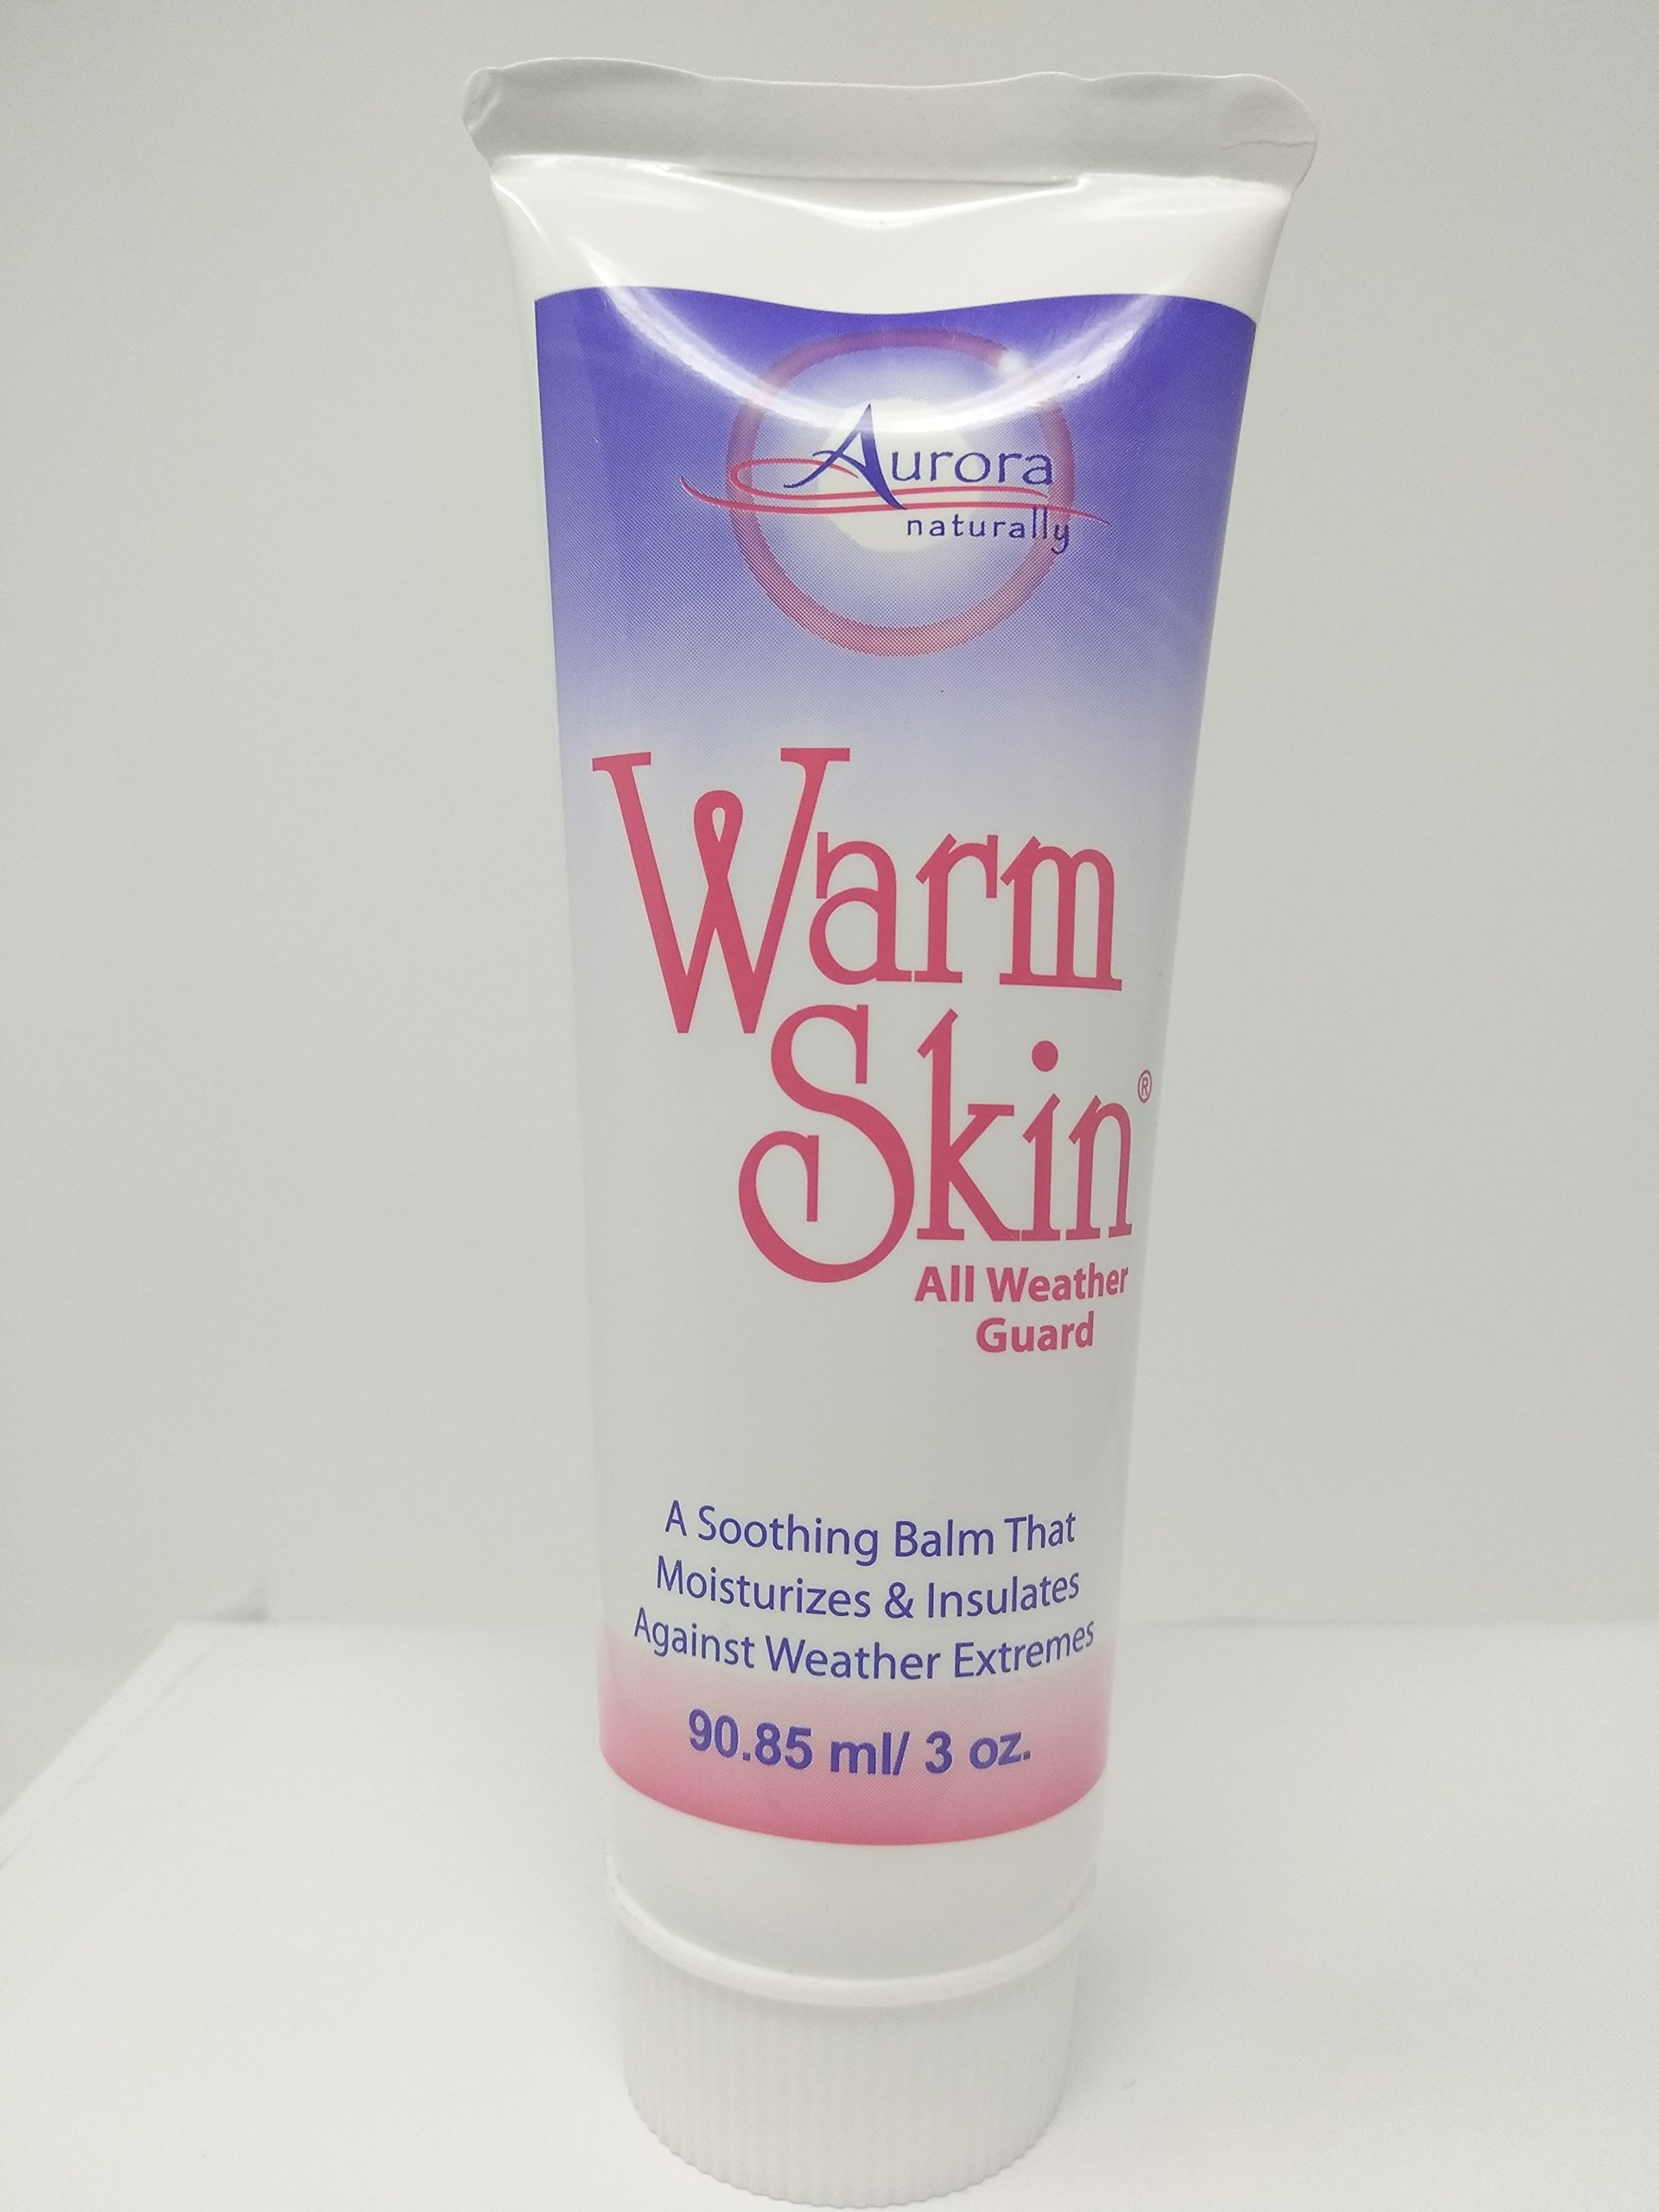 Protective cream against wind and cold